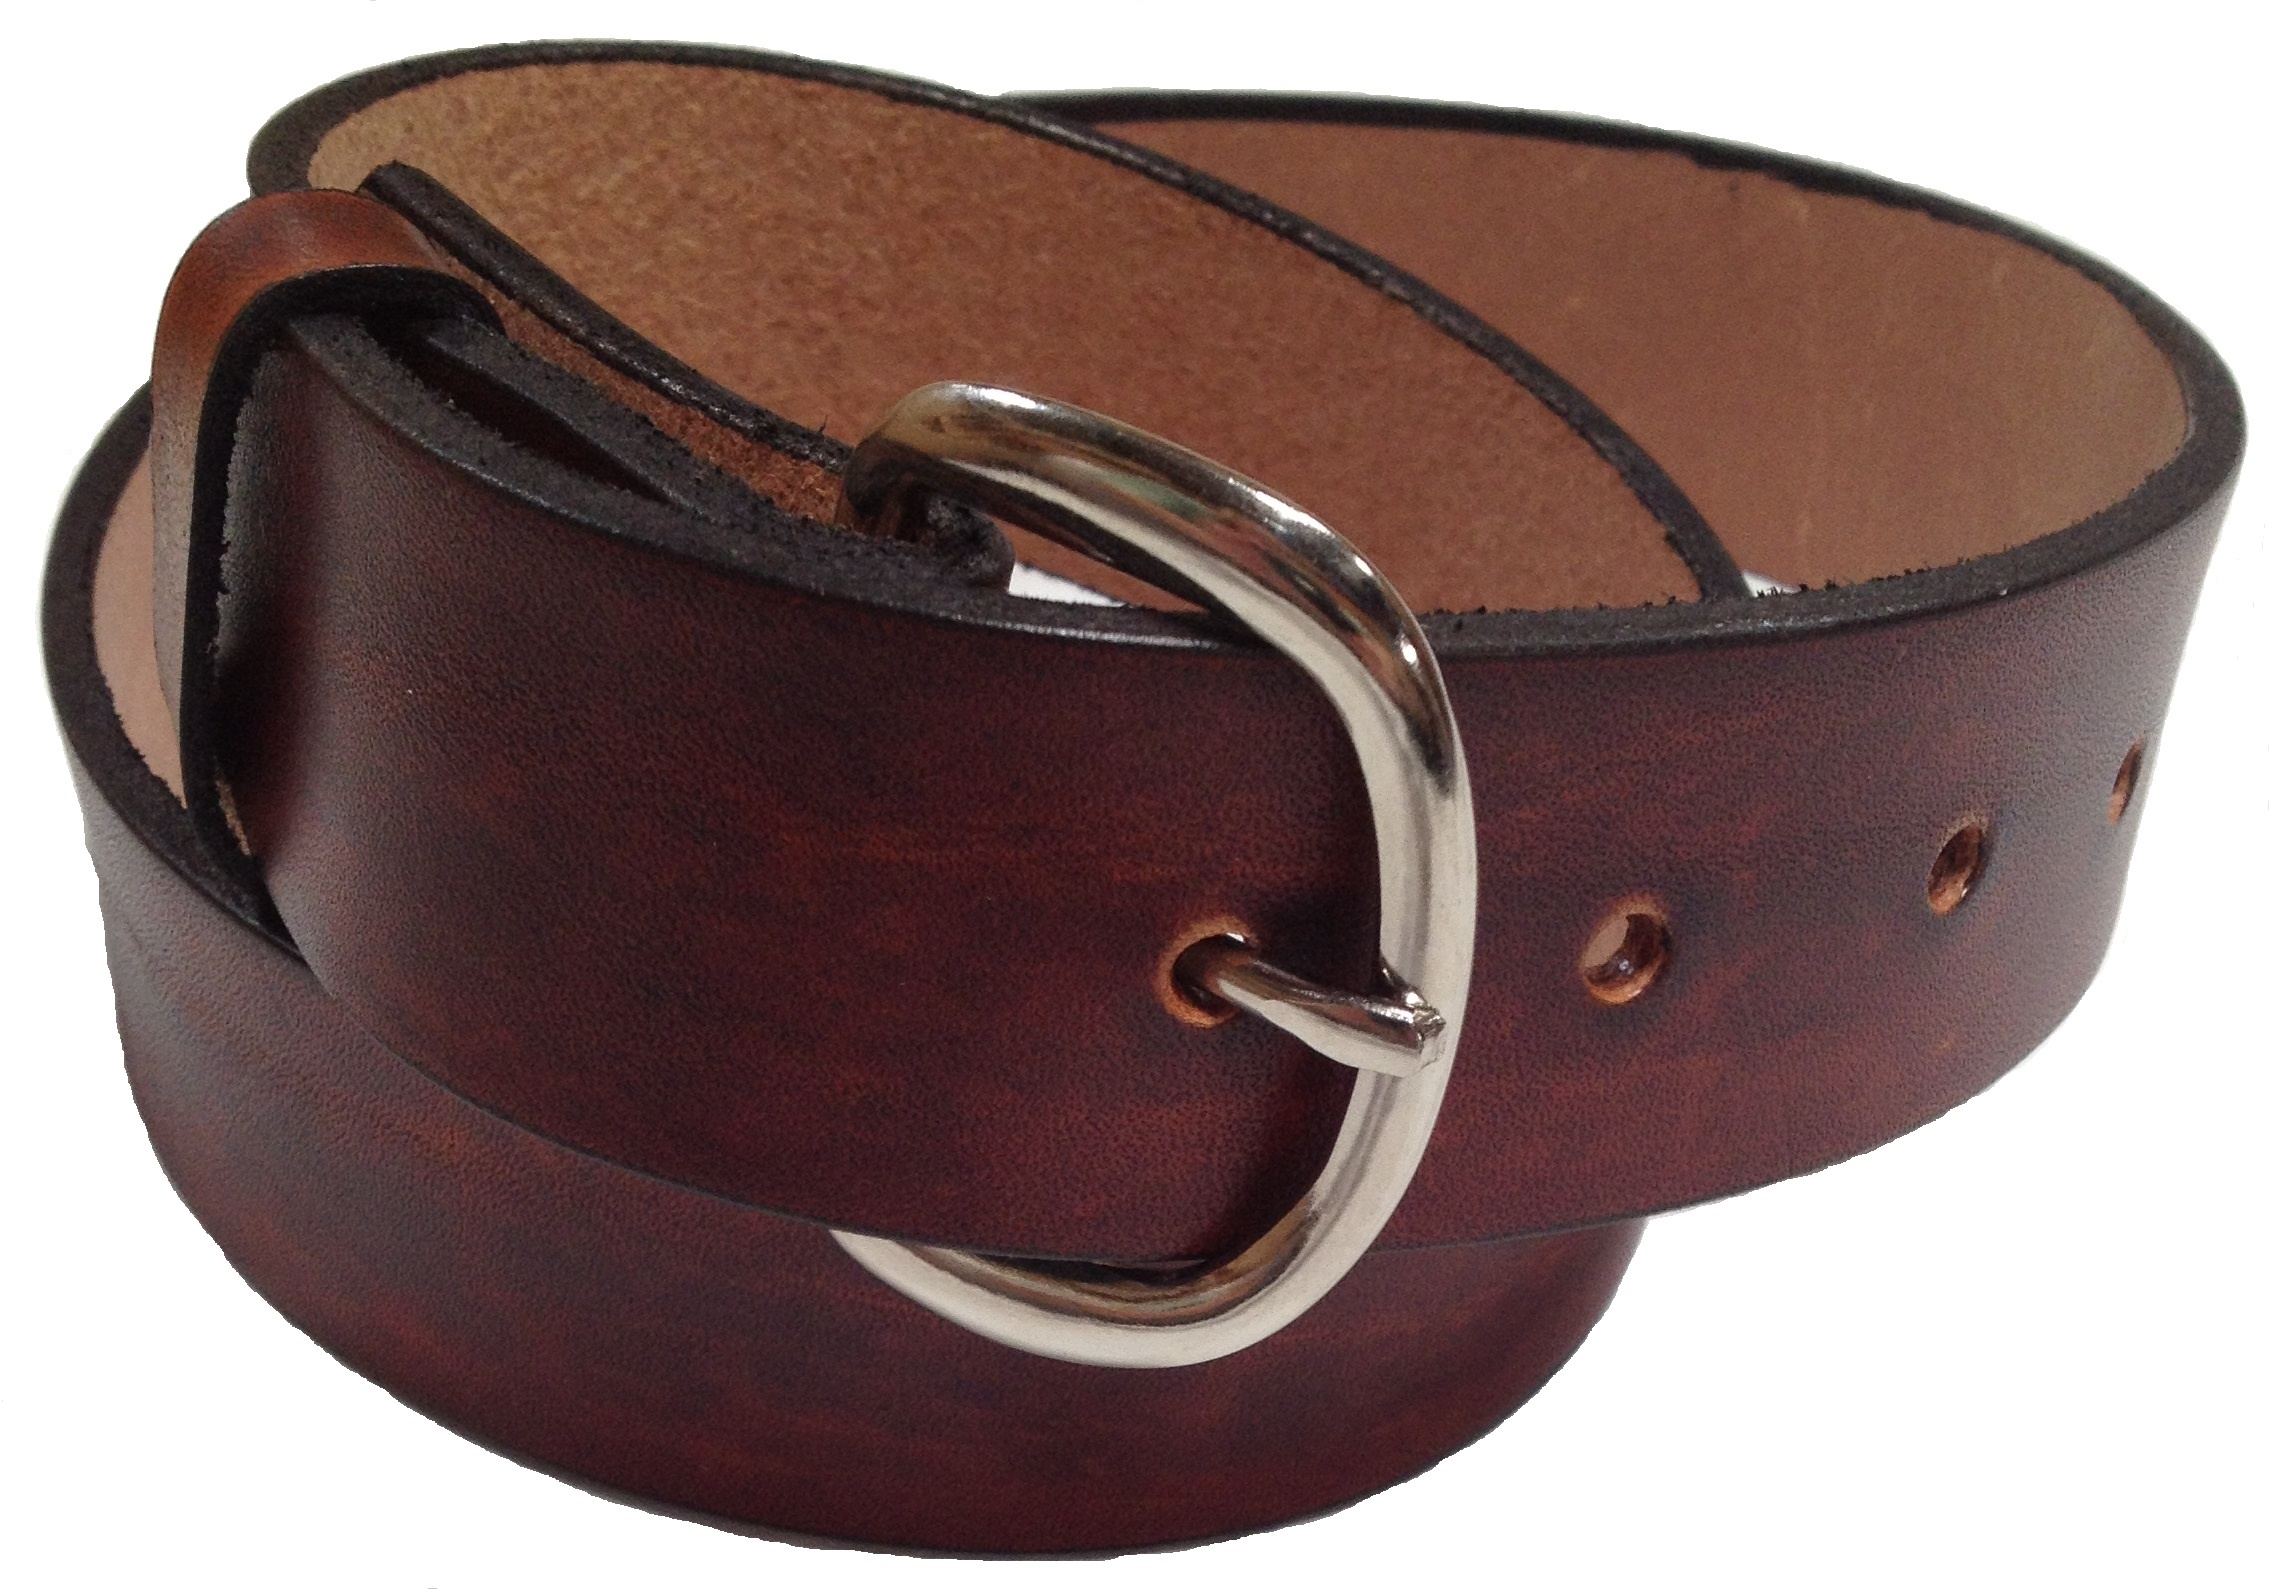 Find great deals on eBay for mens wide belt. Shop with confidence.